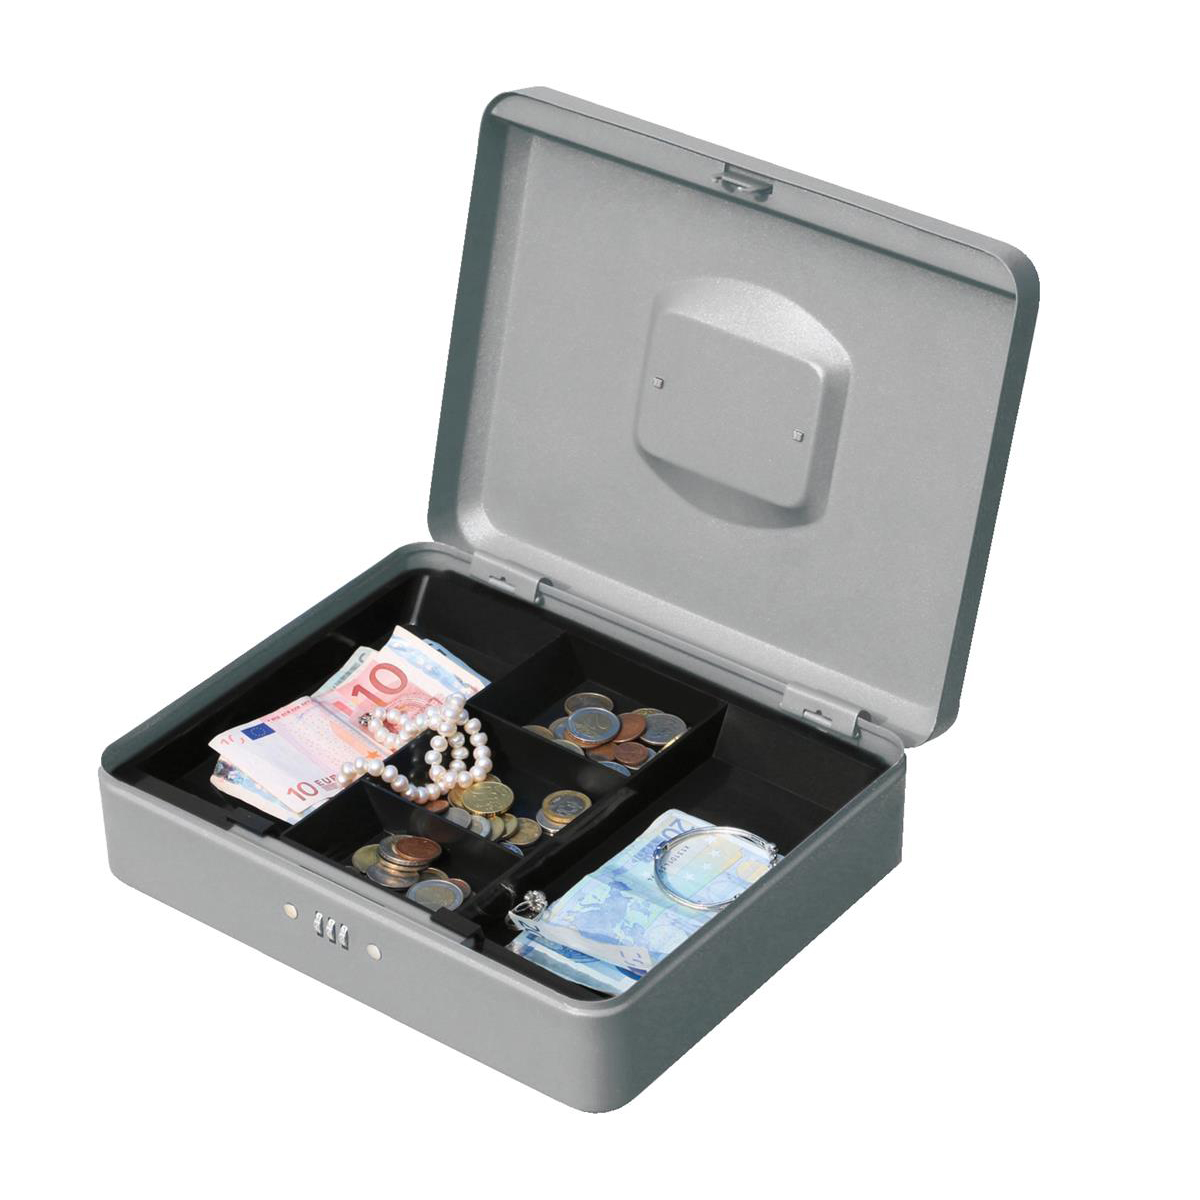 Cash 5 Star Facilities Premium Cash Box with Coin Tray Metal Combination Lock W300xD240xH90mm Grey